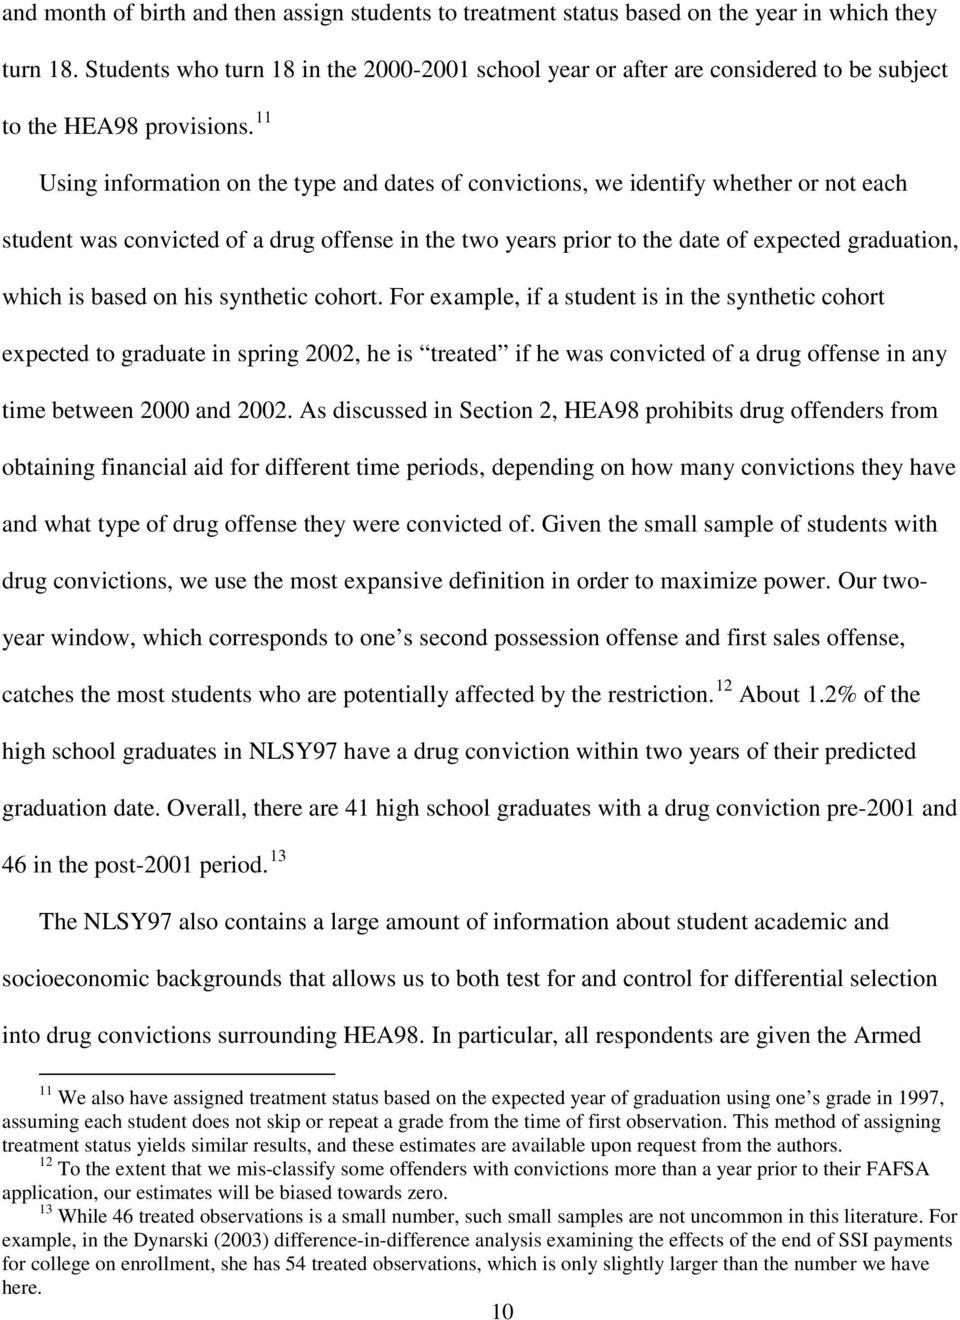 11 Using information on the type and dates of convictions, we identify whether or not each student was convicted of a drug offense in the two years prior to the date of expected graduation, which is